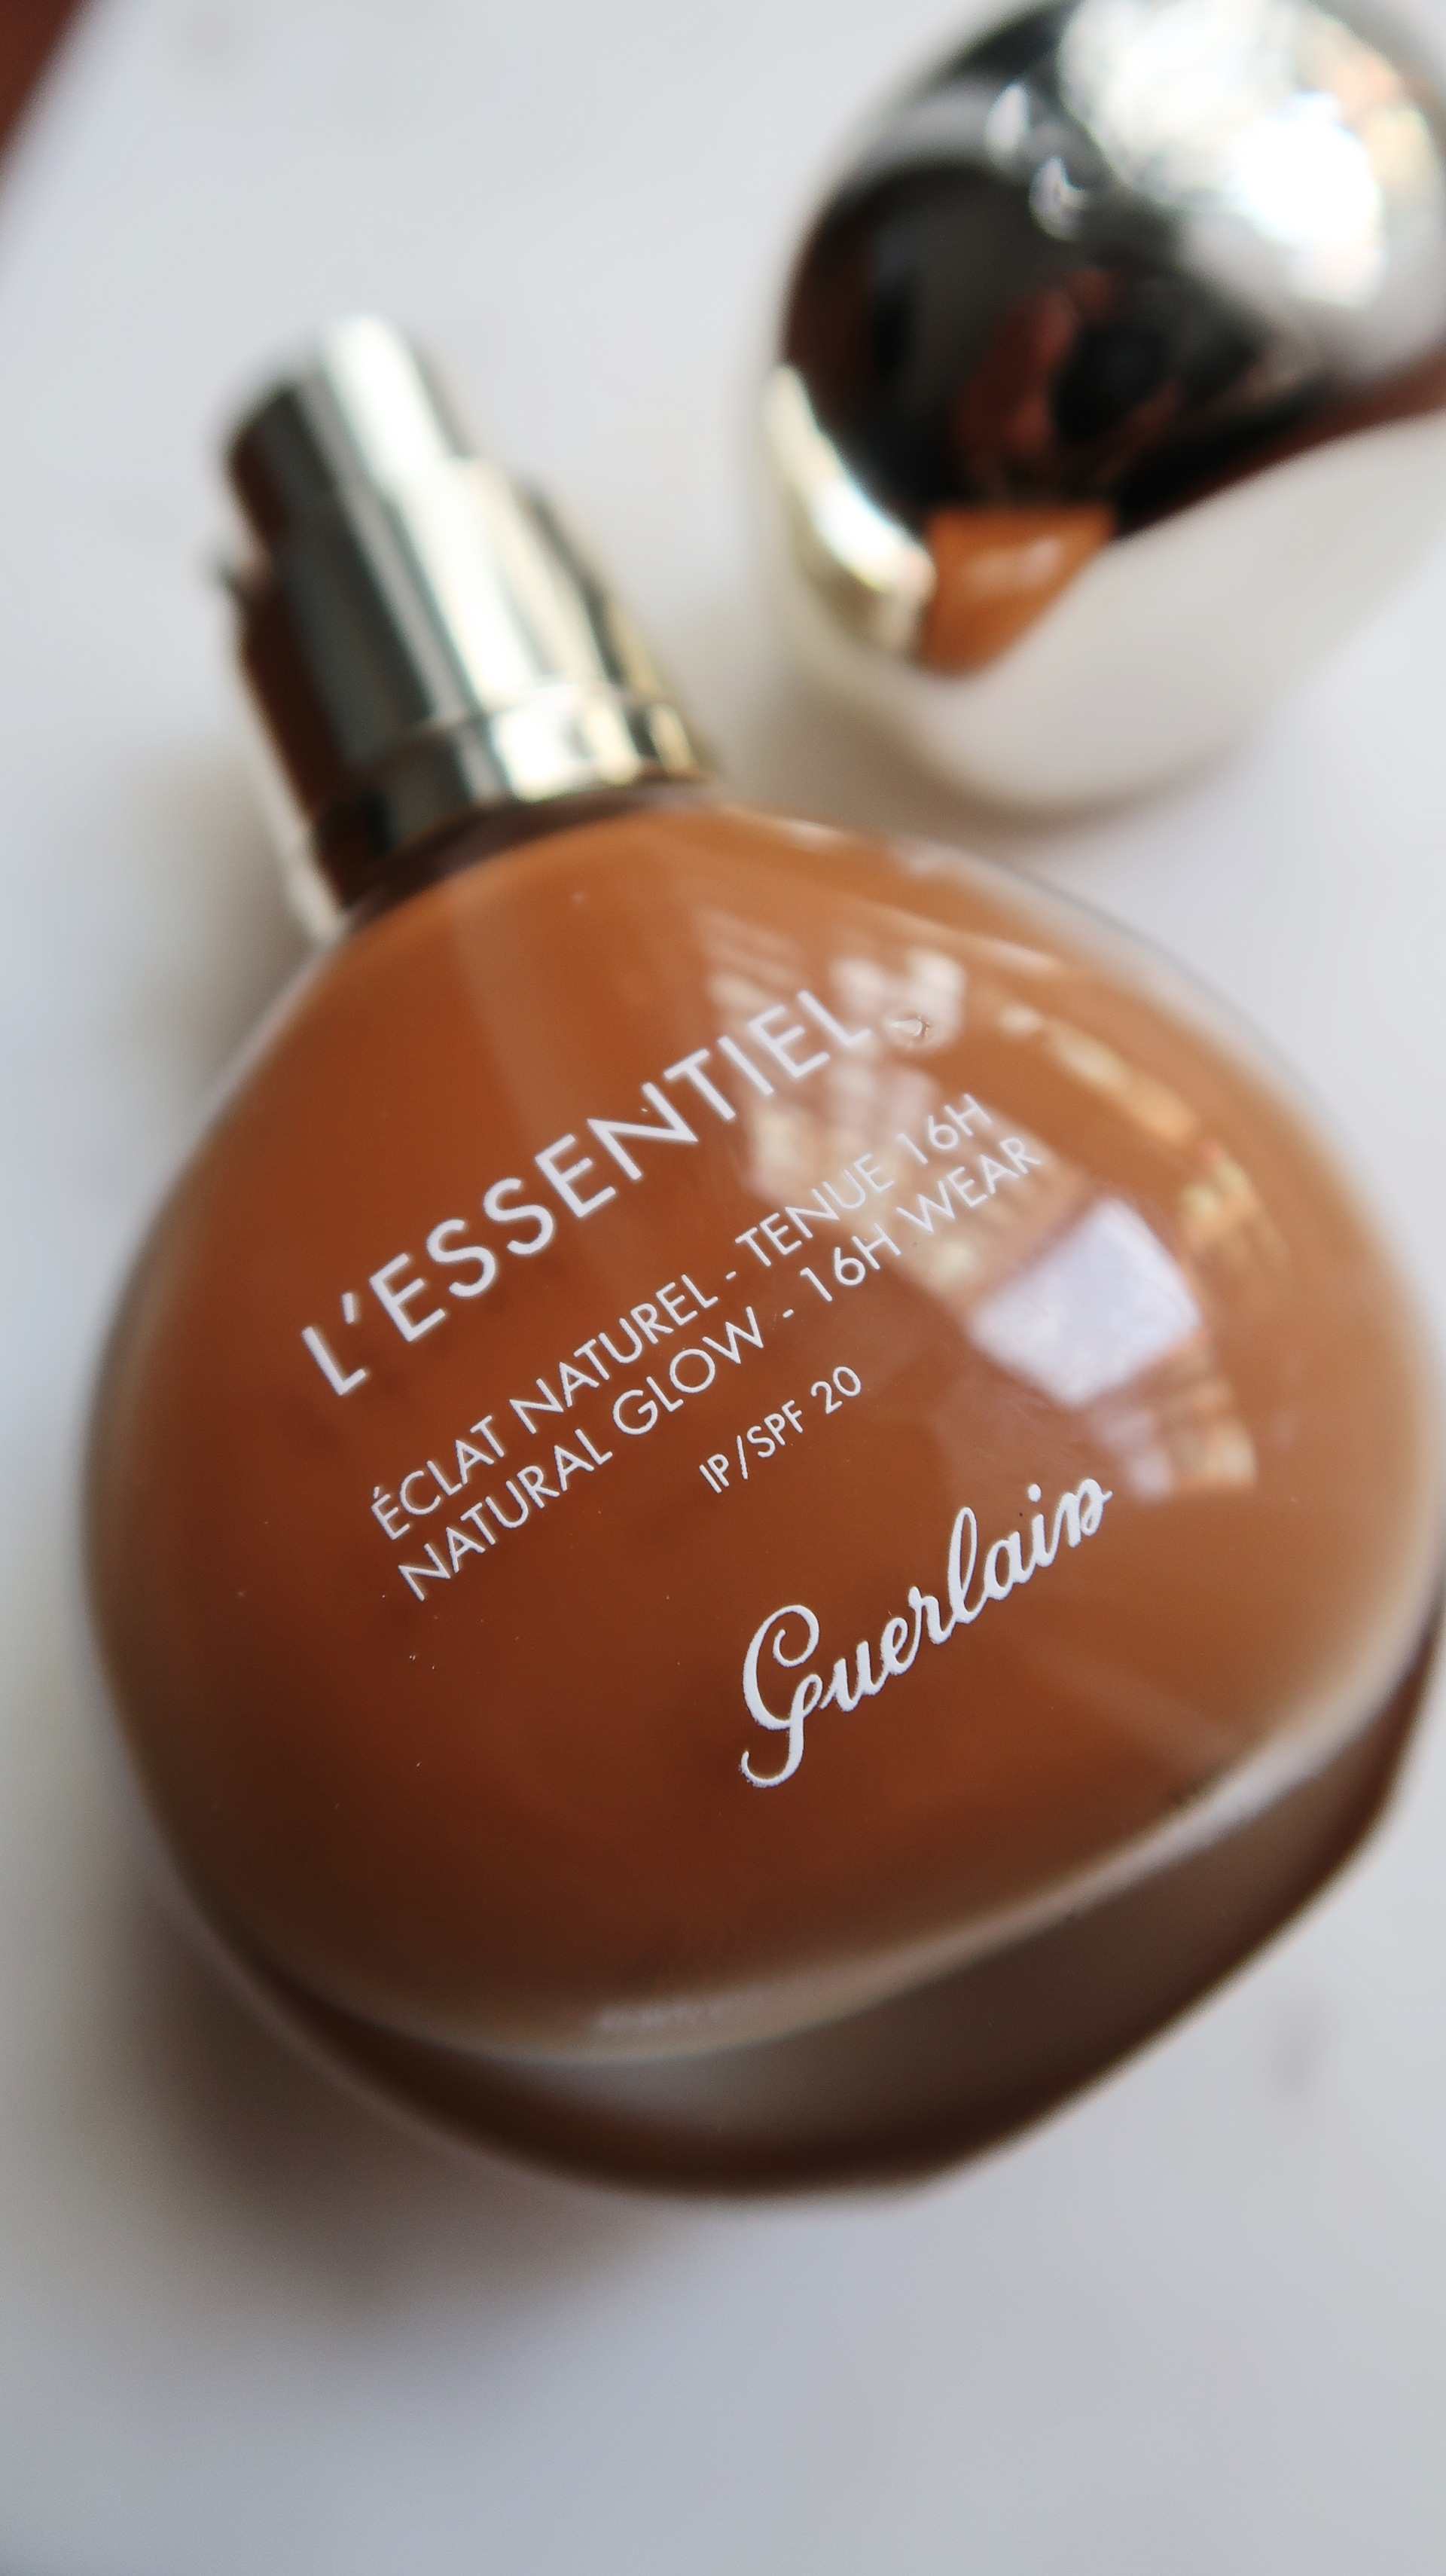 Blush London Review Guerlain L'essentiel Natural Glow Foundation8C31DE6D-8FA9-44ED-B1F2-67EC569CDFBB